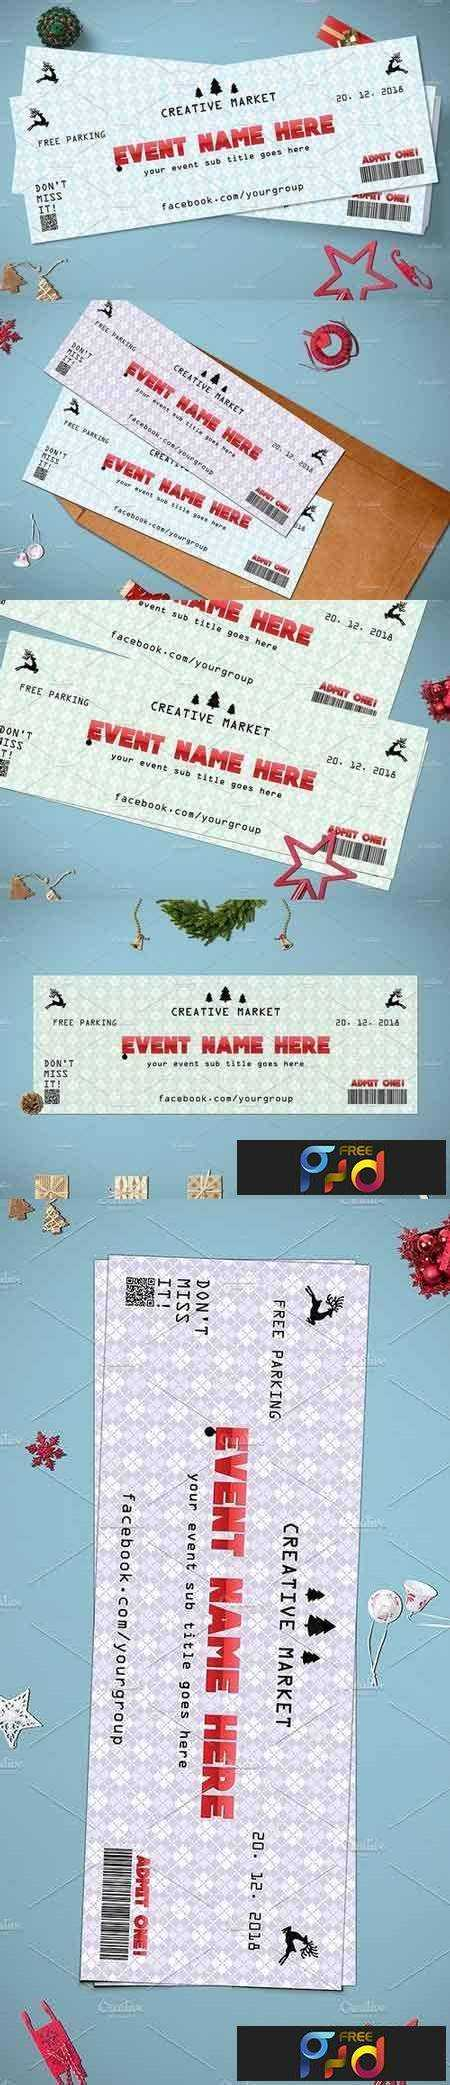 1708234 Christmas Event Ticket 2032723 1